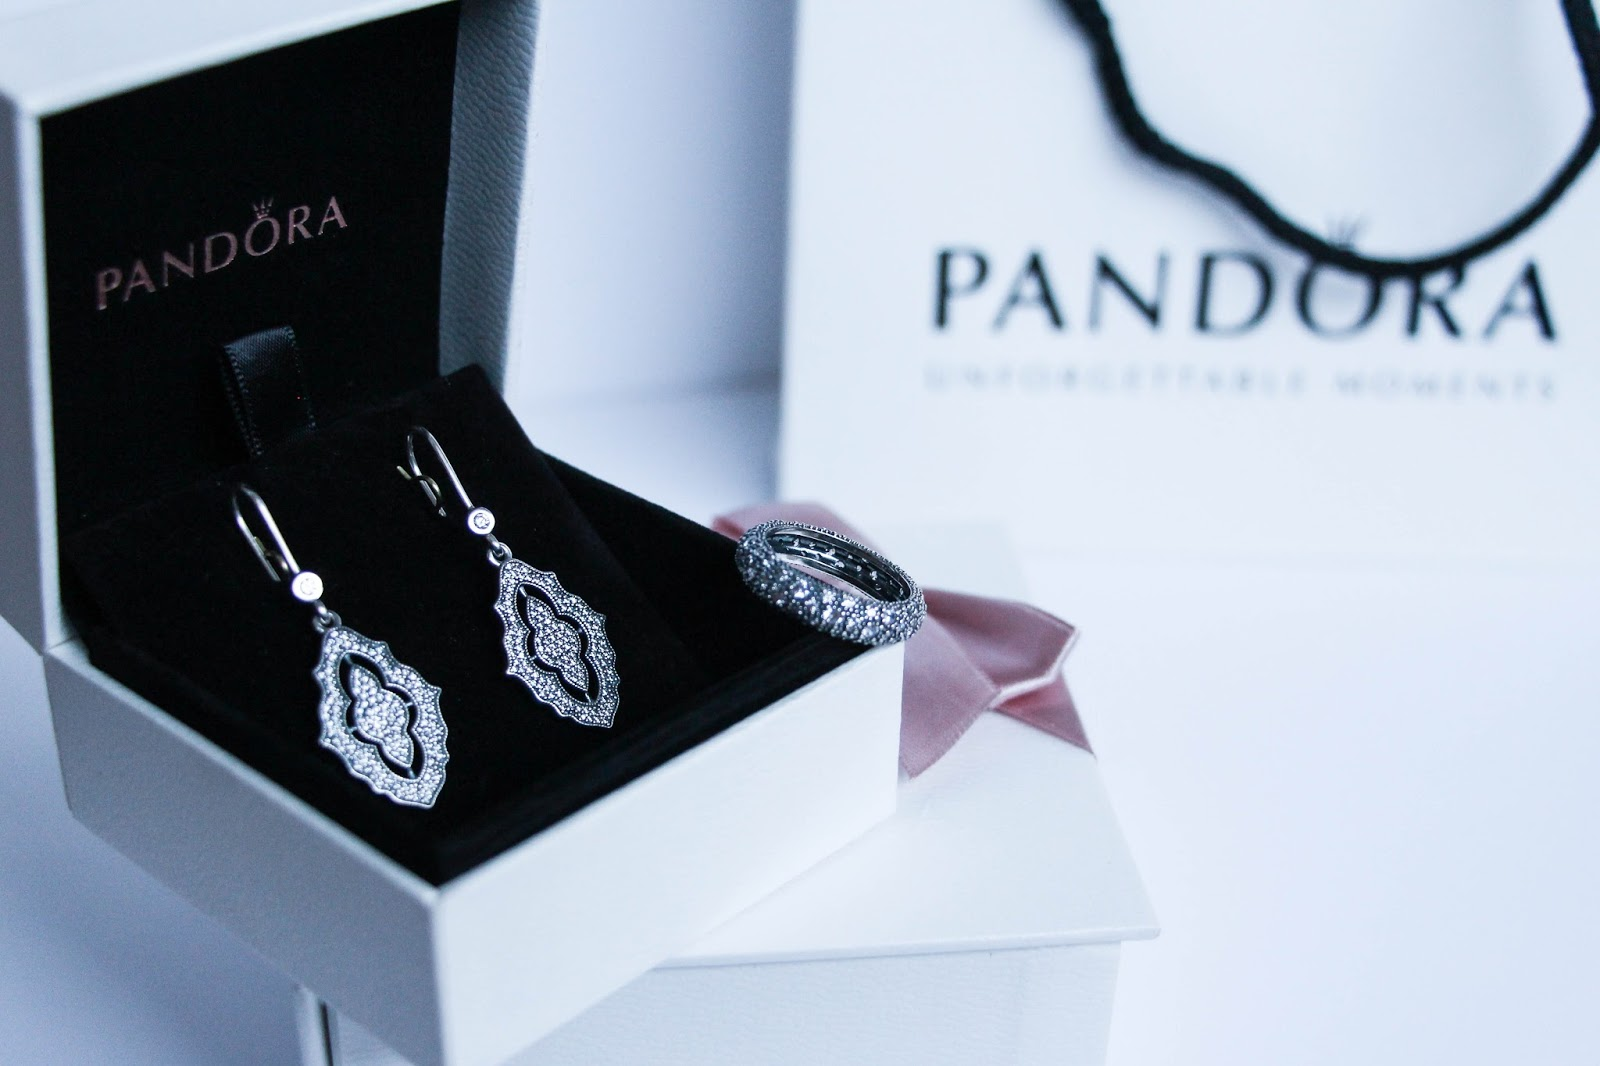 Pandora_Sparkling_Classic_Lace_Earrings